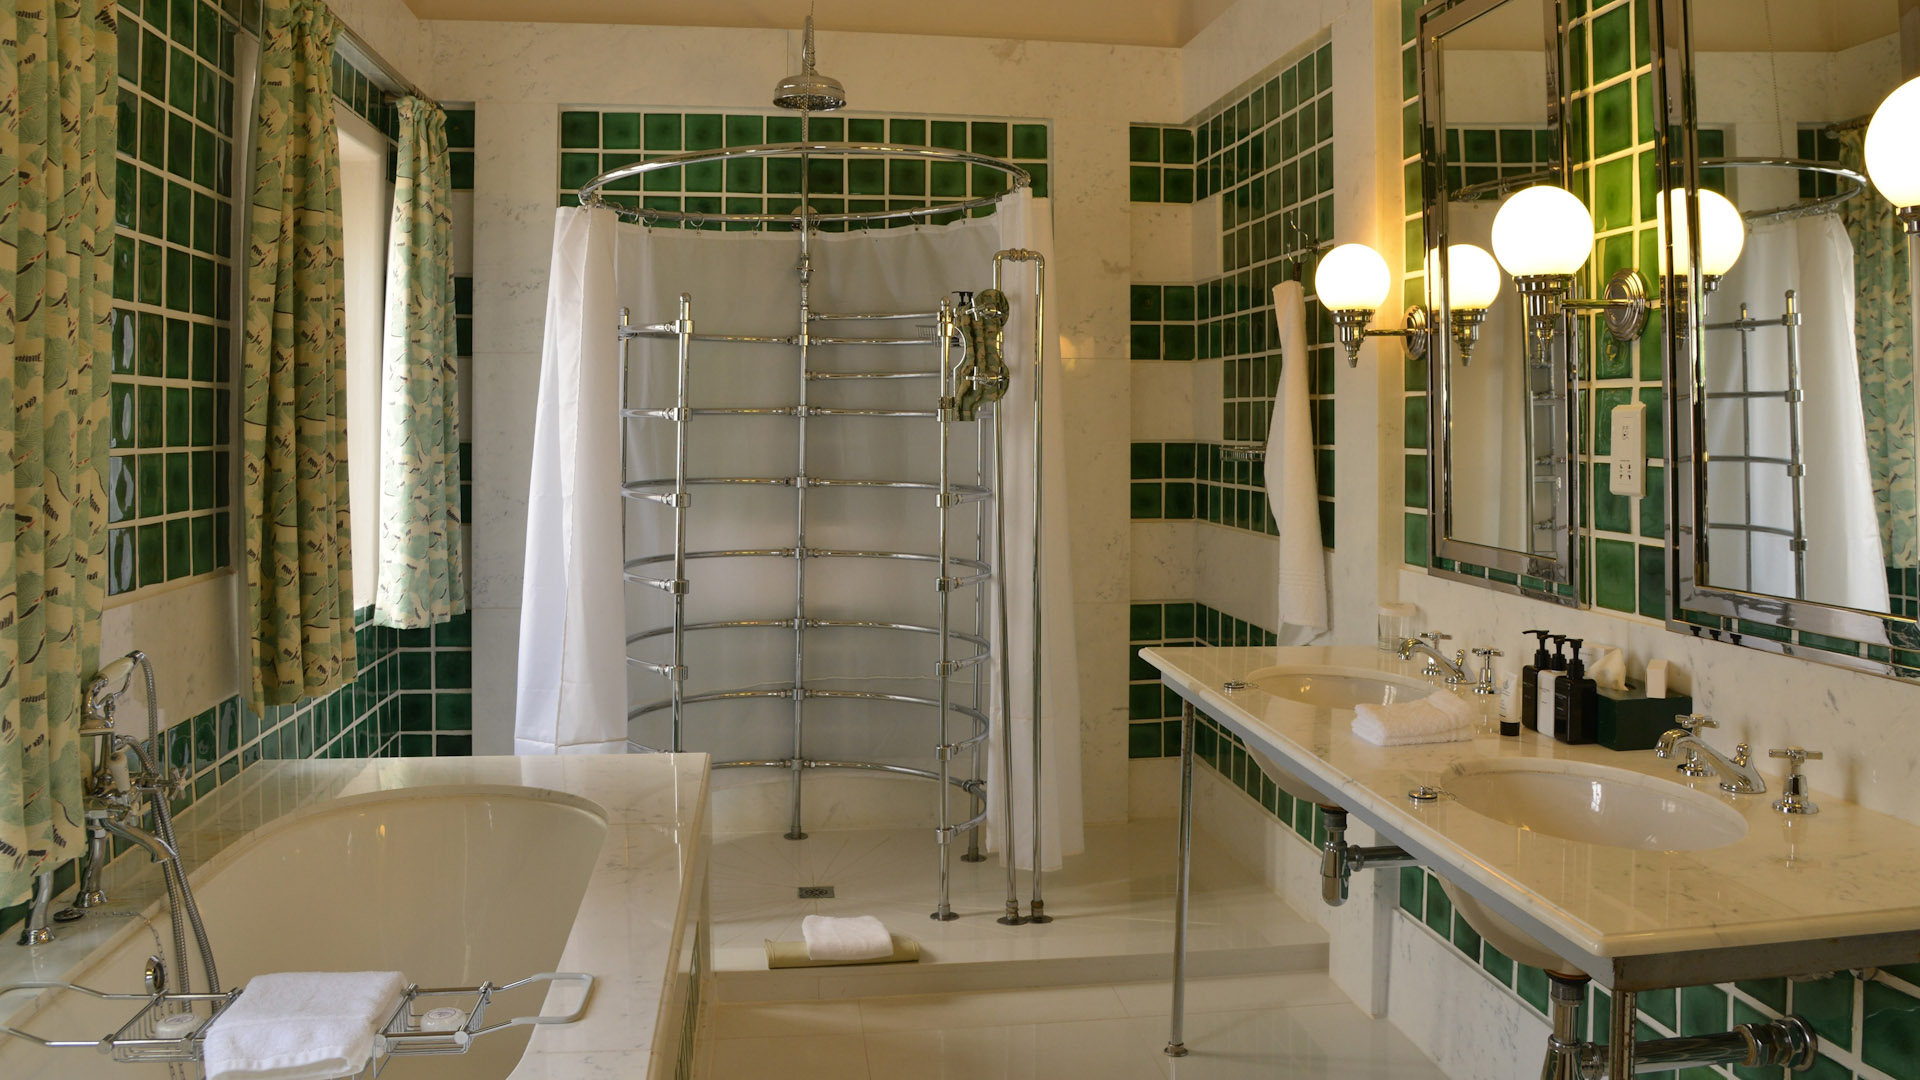 Bathroom Designs Zimbabwe victoria falls hotel, zimbabwe - natural world safaris